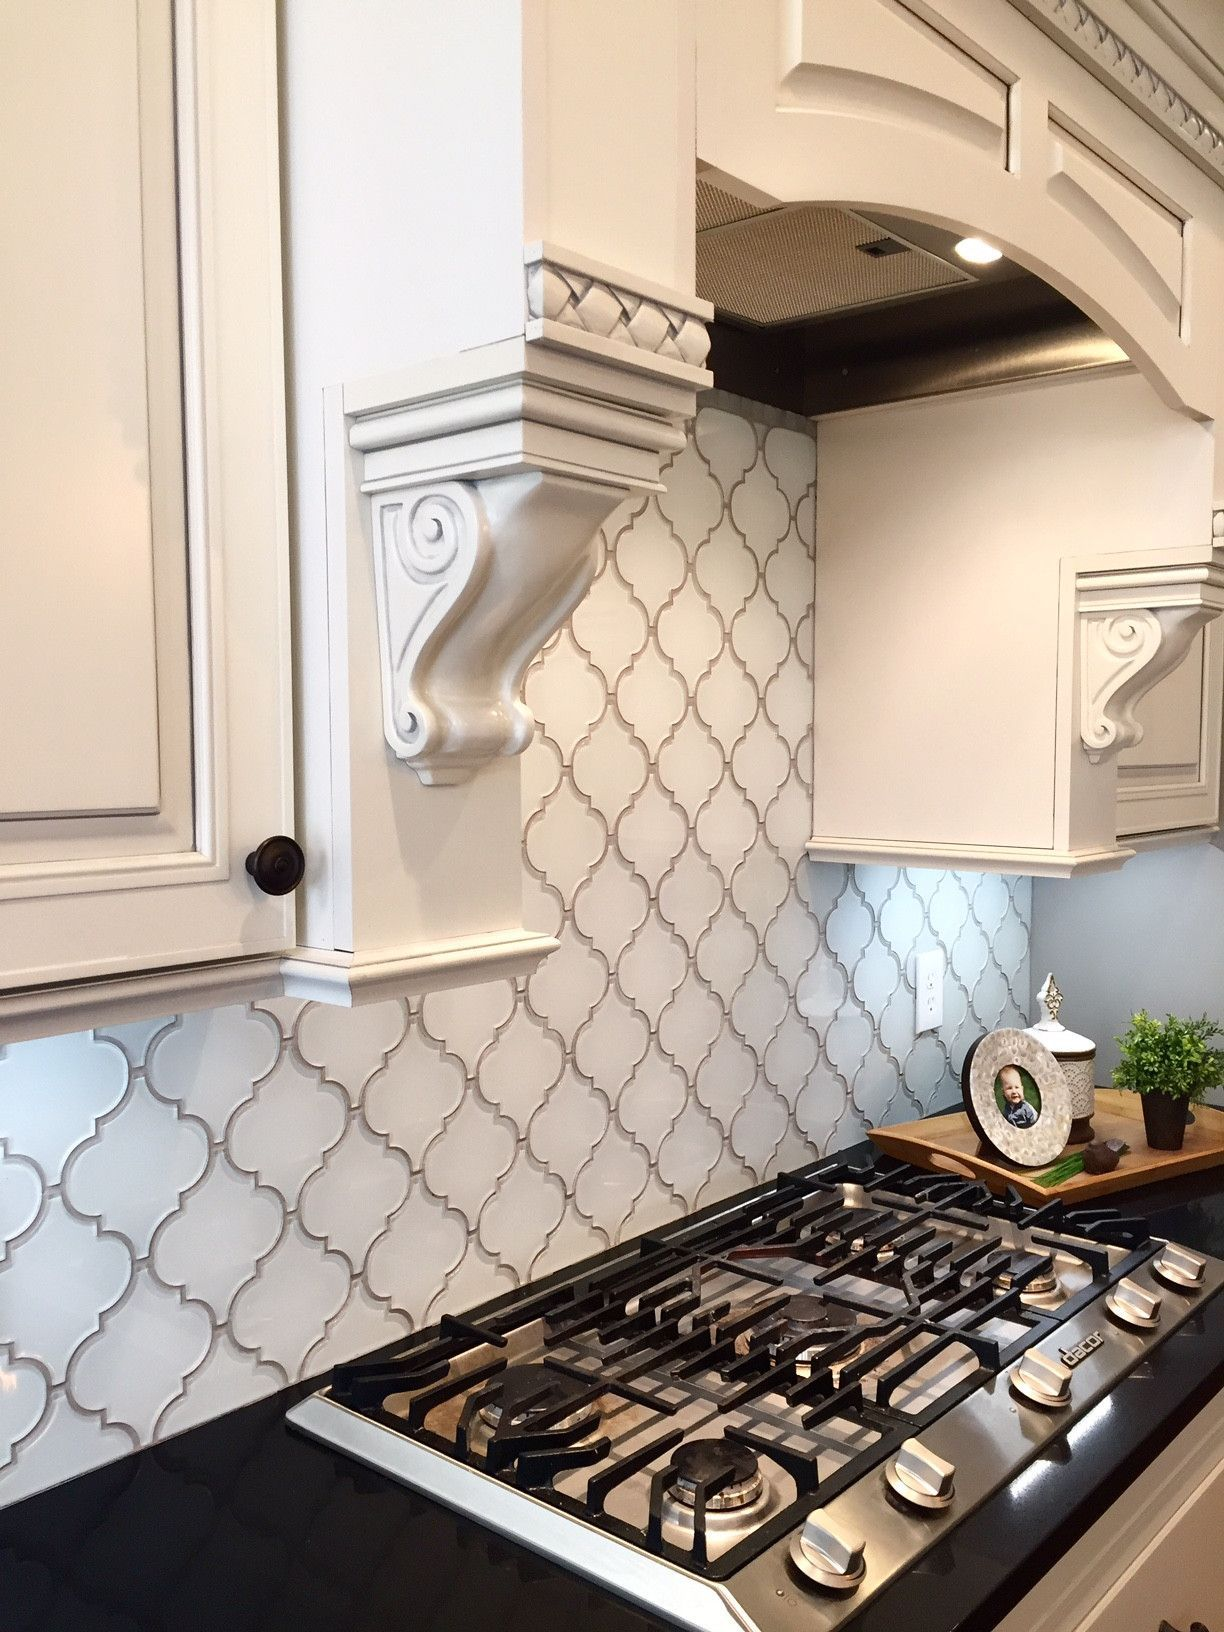 Snow white arabesque glass mosaic tiles kitchen for Glass tile kitchen backsplash ideas